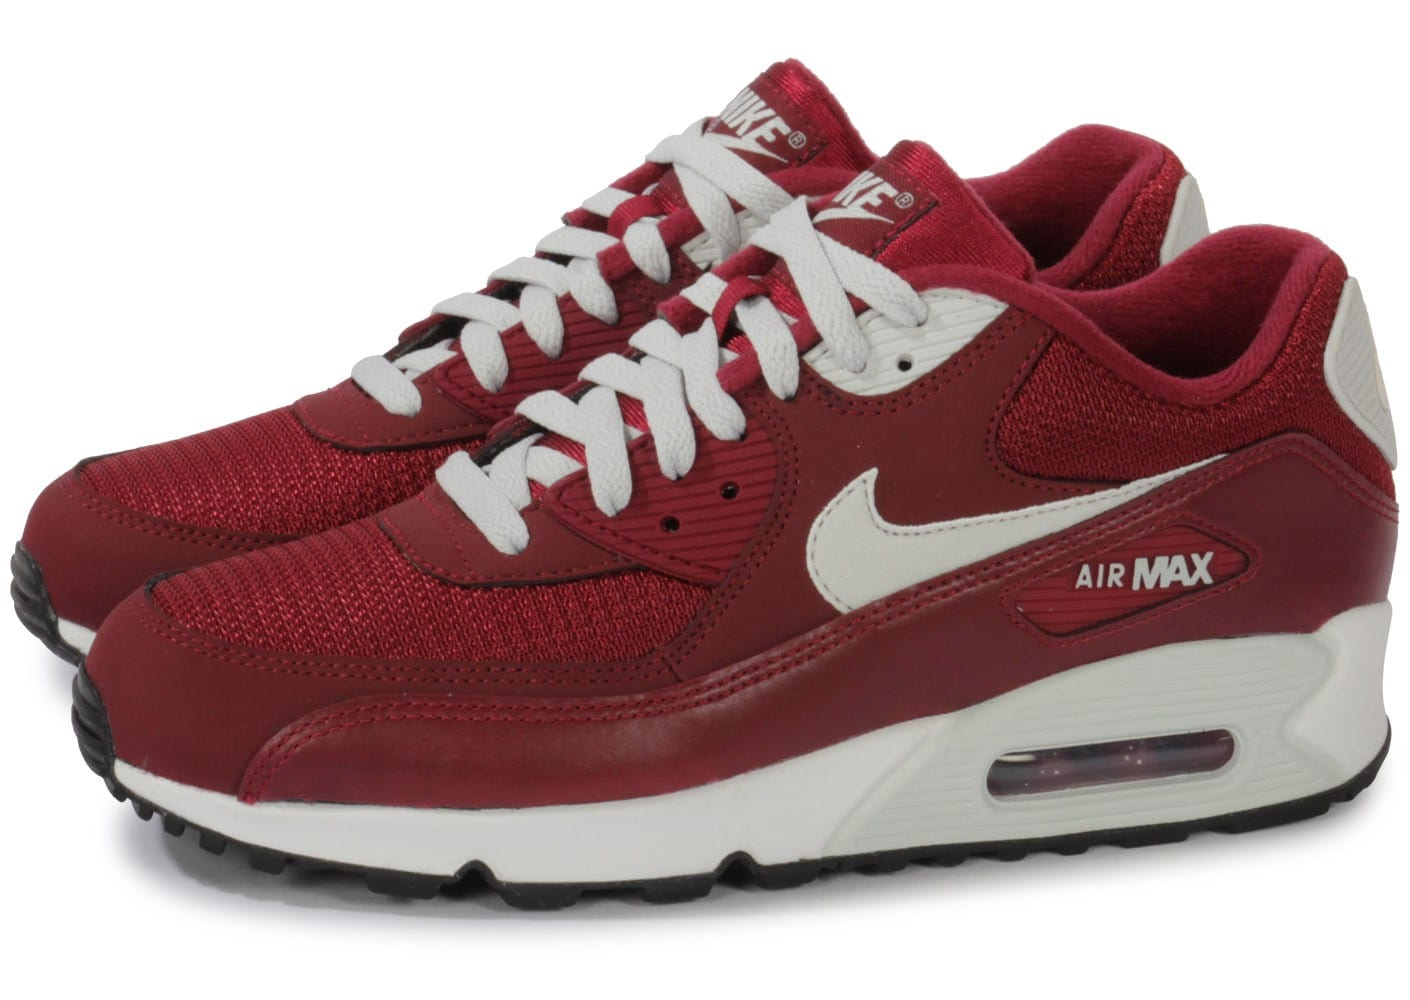 nike air max 90 essential bordeaux chaussures homme chausport. Black Bedroom Furniture Sets. Home Design Ideas